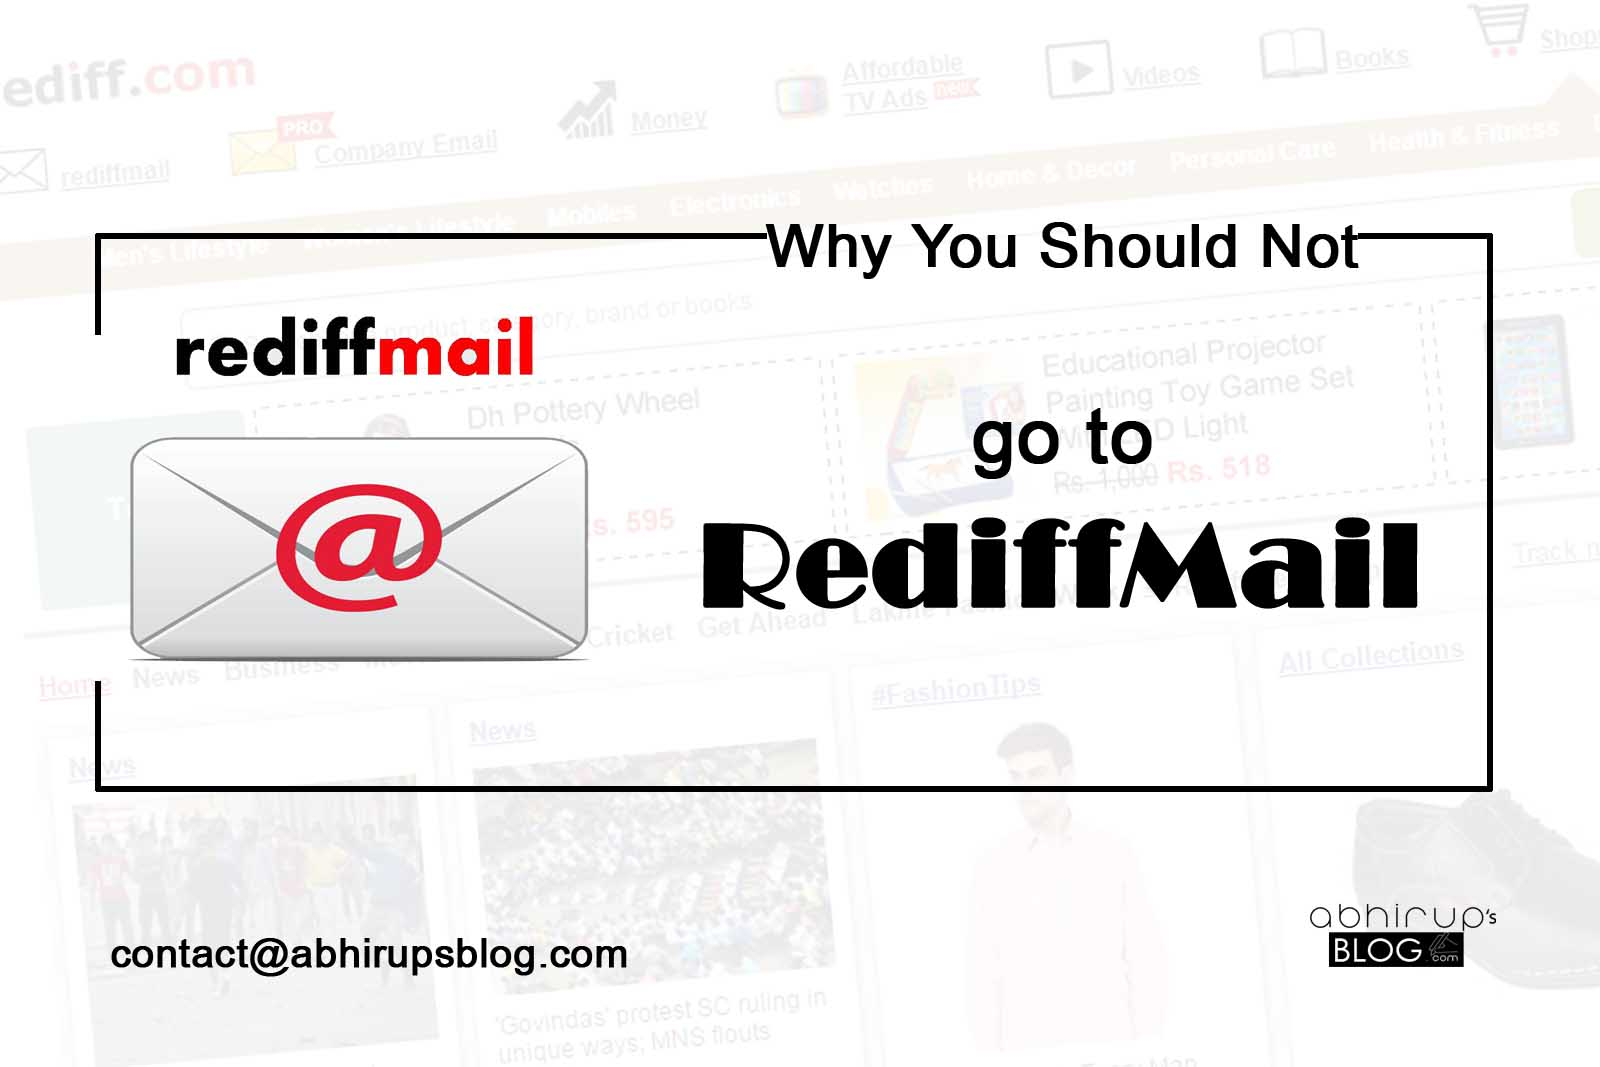 Rediffmail - Why You Should Not Go To Rediffmail